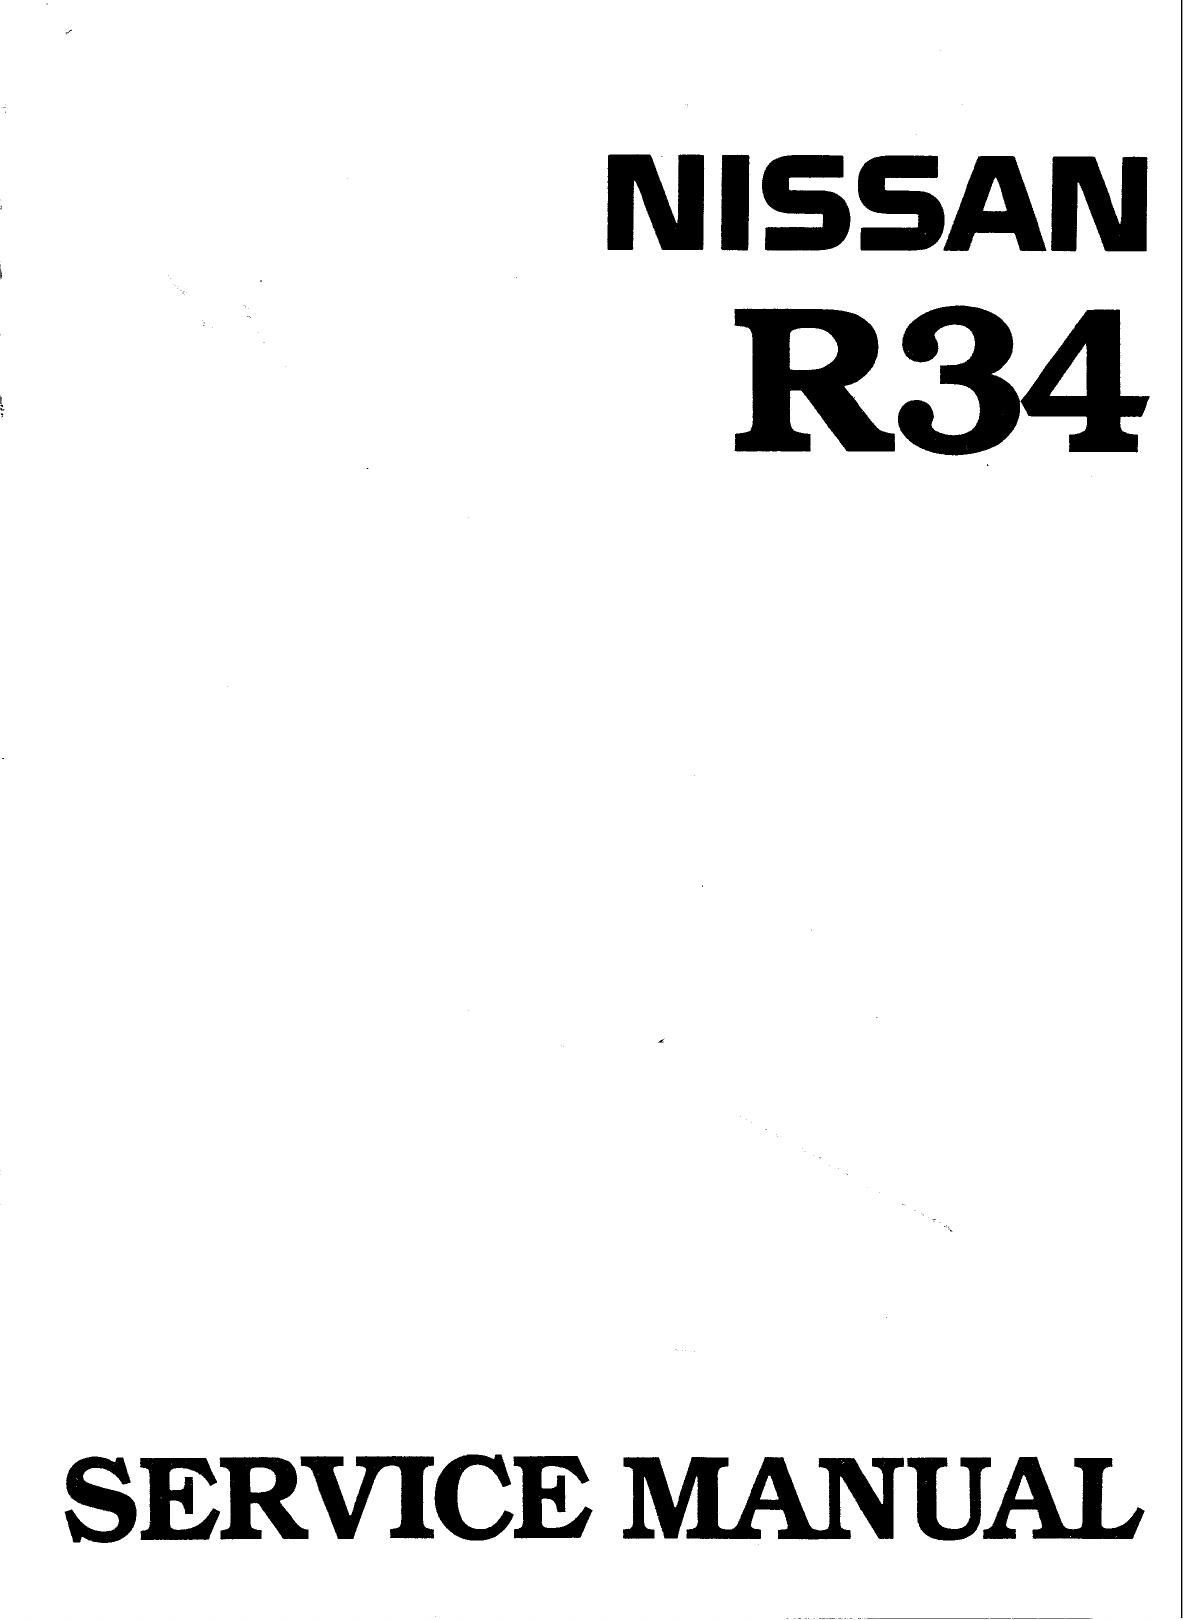 See our other Nissan Skyline Manuals: Nissan Skyline Workshop Manual R32